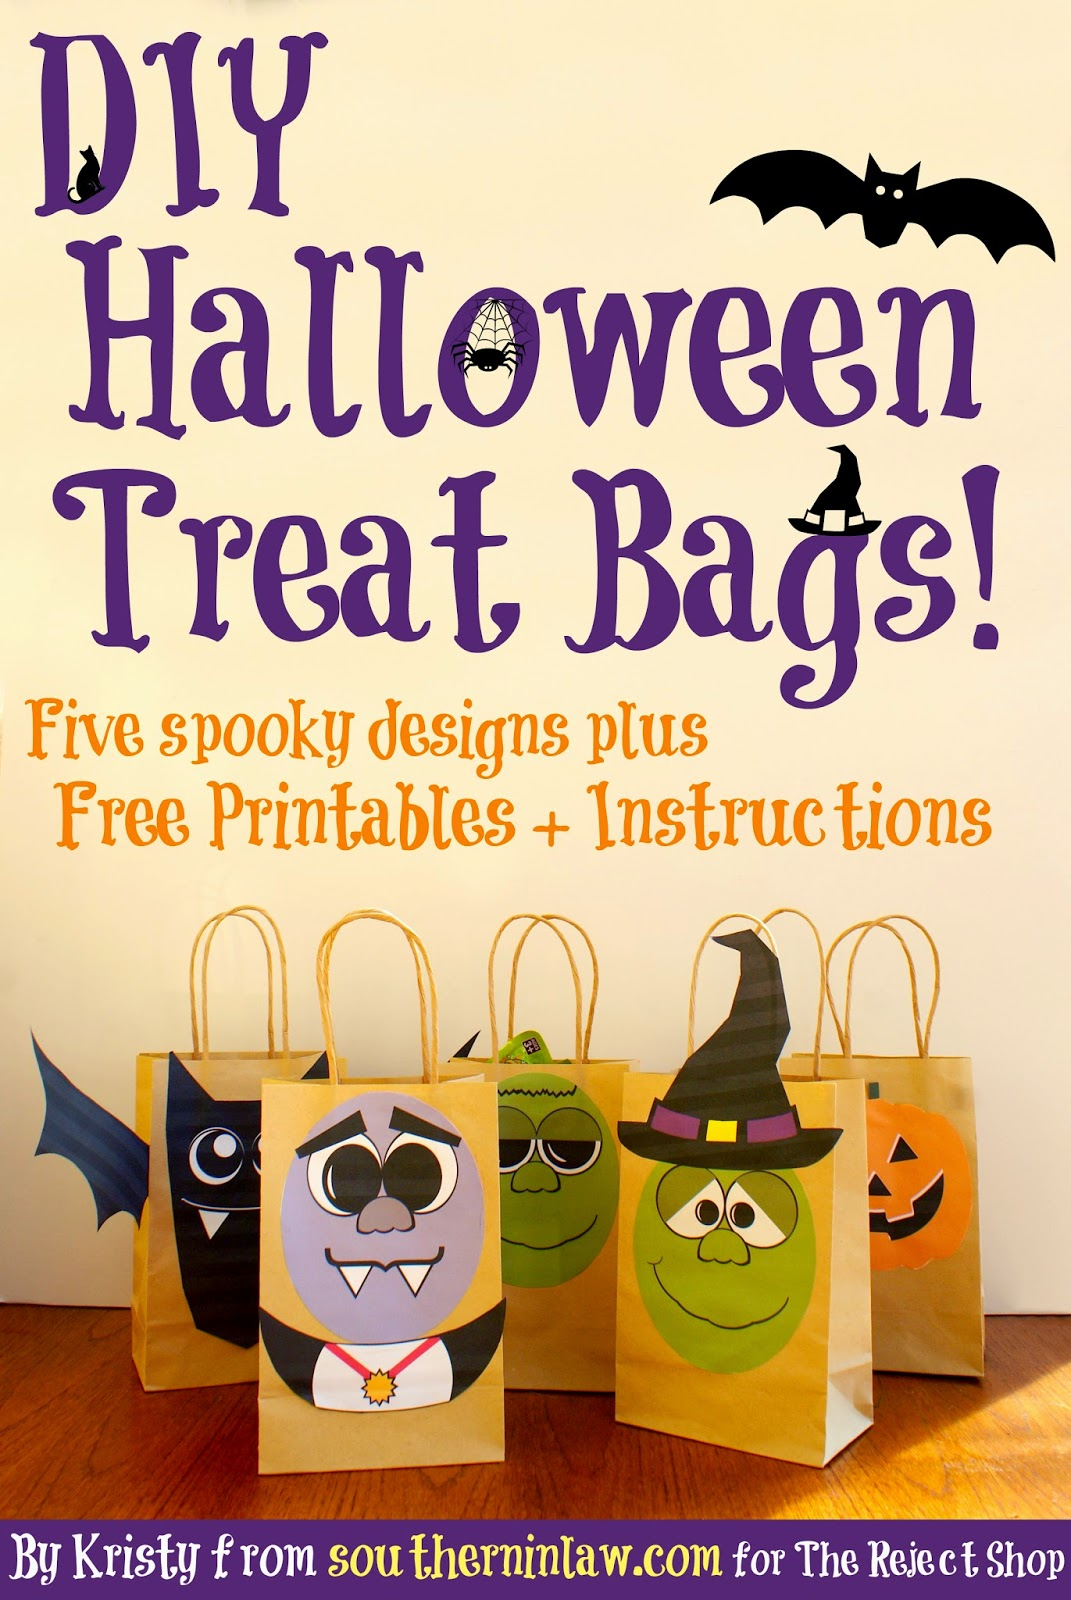 DIY Halloween Treat Bags plus Free Halloween Printable Templates